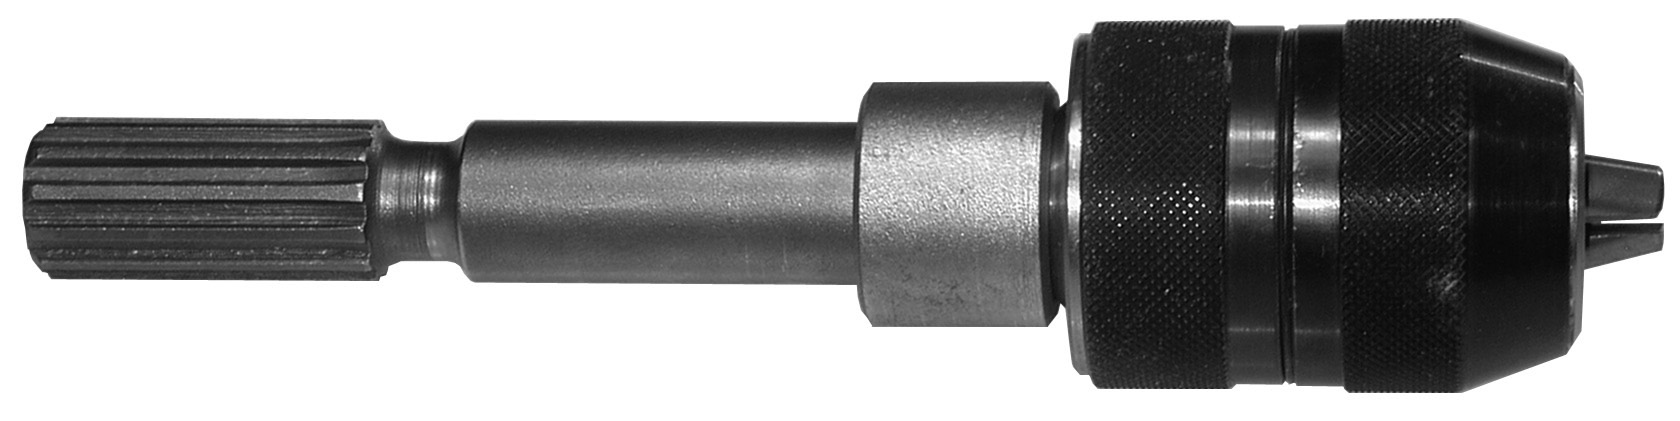 rotary chuck driver adapter sds plus sds max spline drive